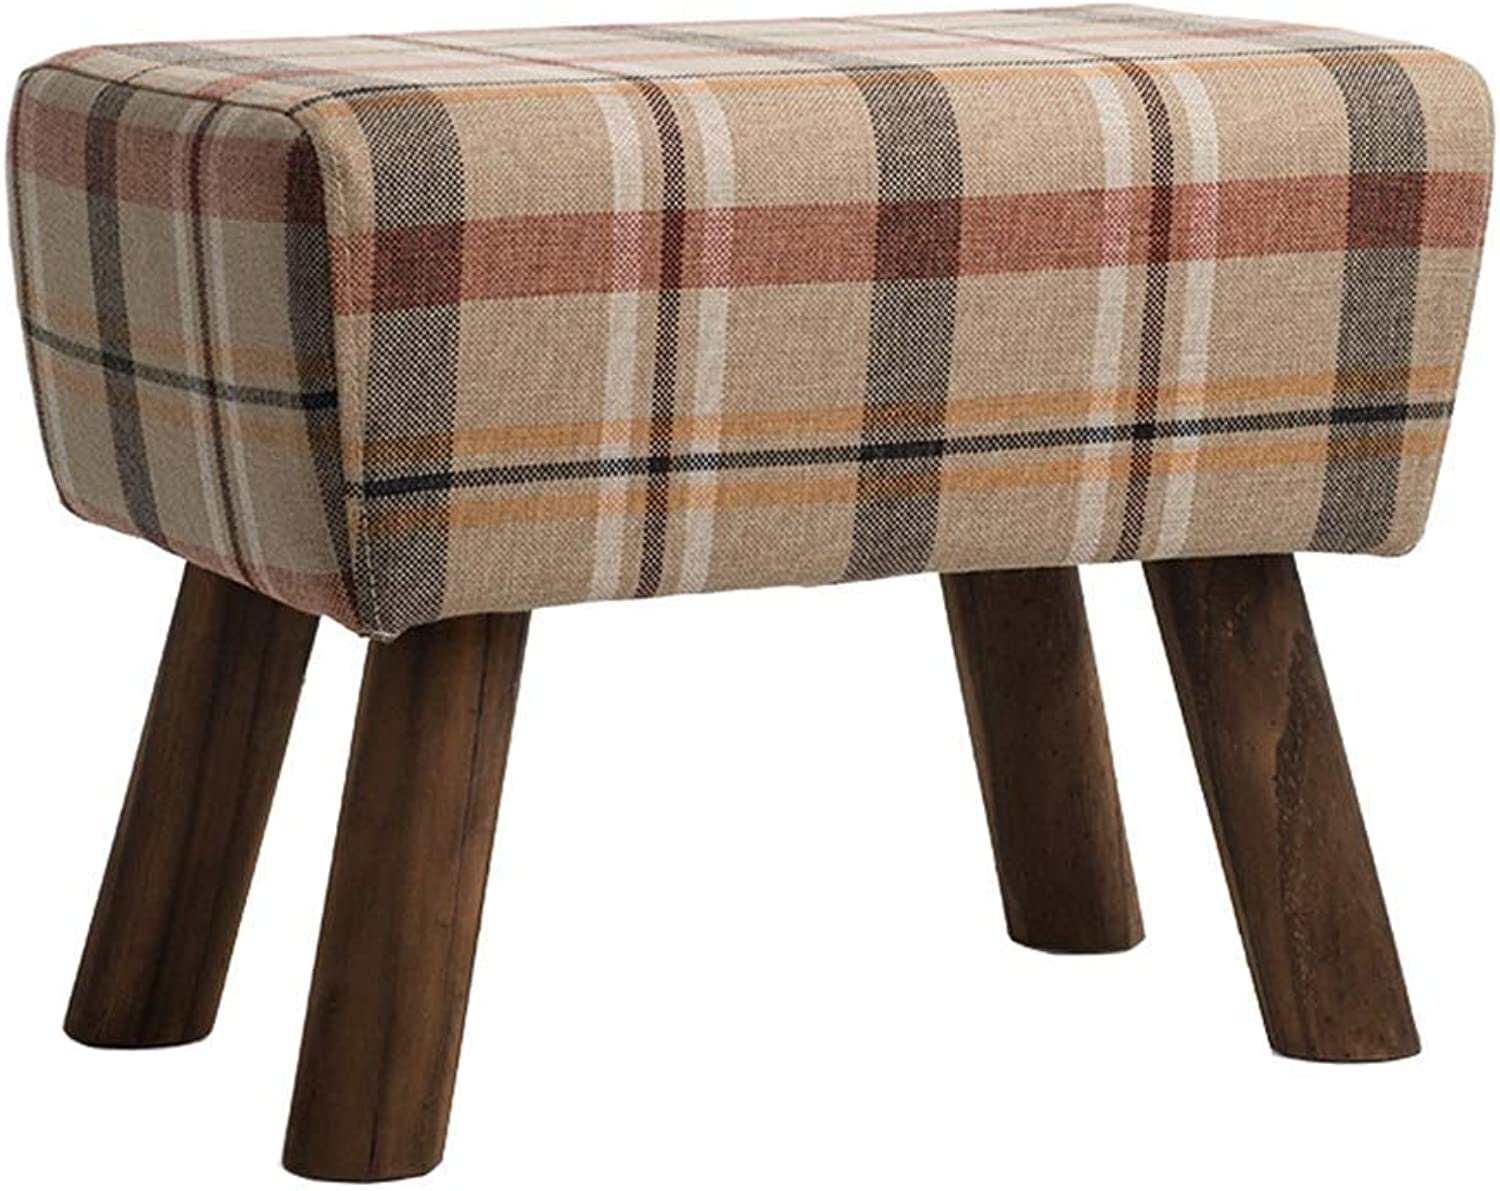 Solid shoes Bench Fabric Pillows Living Room Footstools Small Stools ...